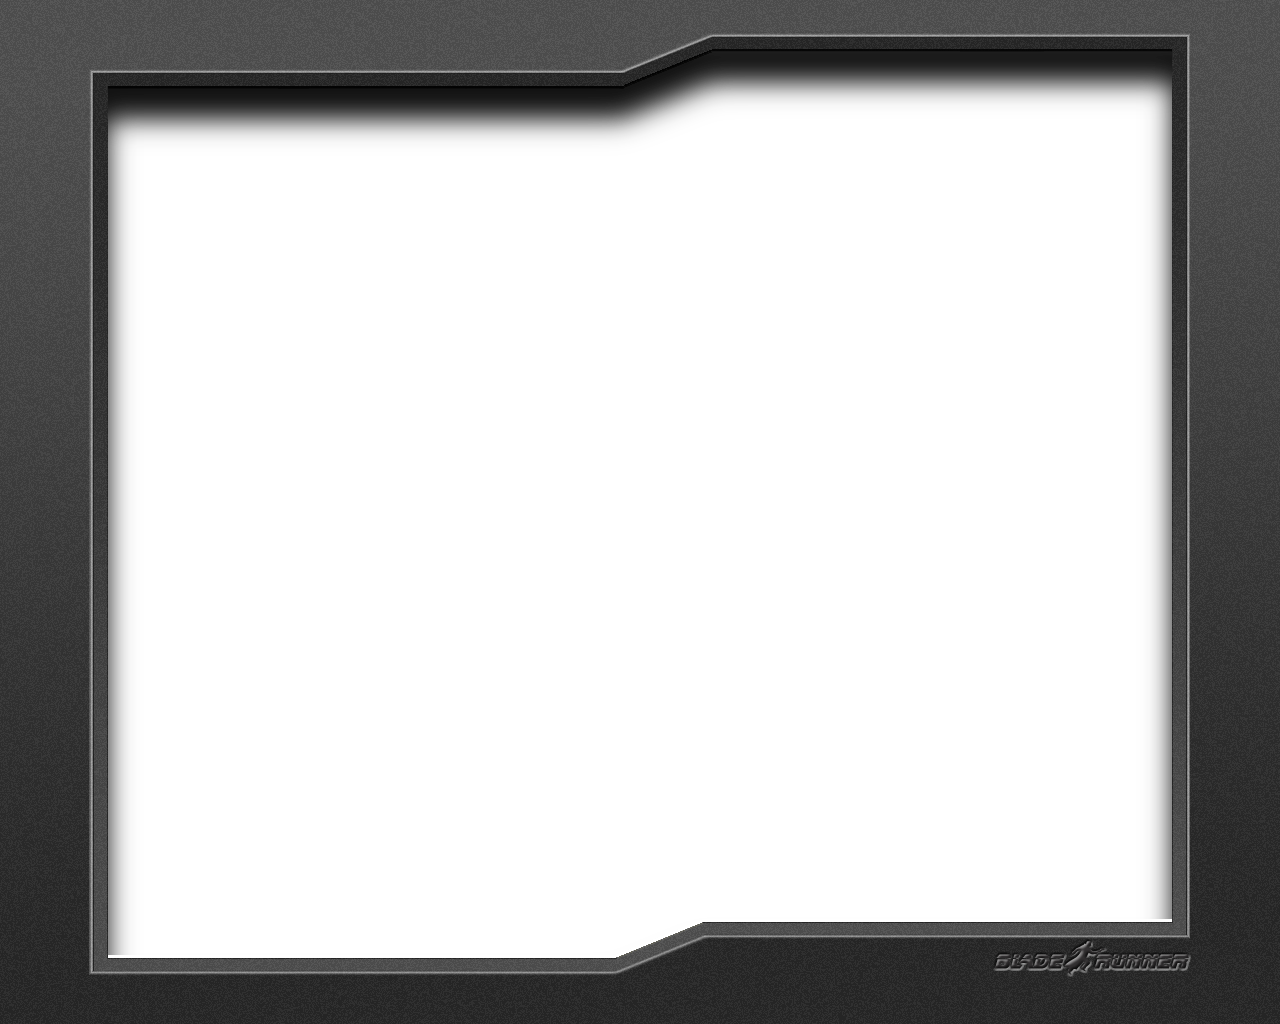 Webcam frame png. Home of the netbadger